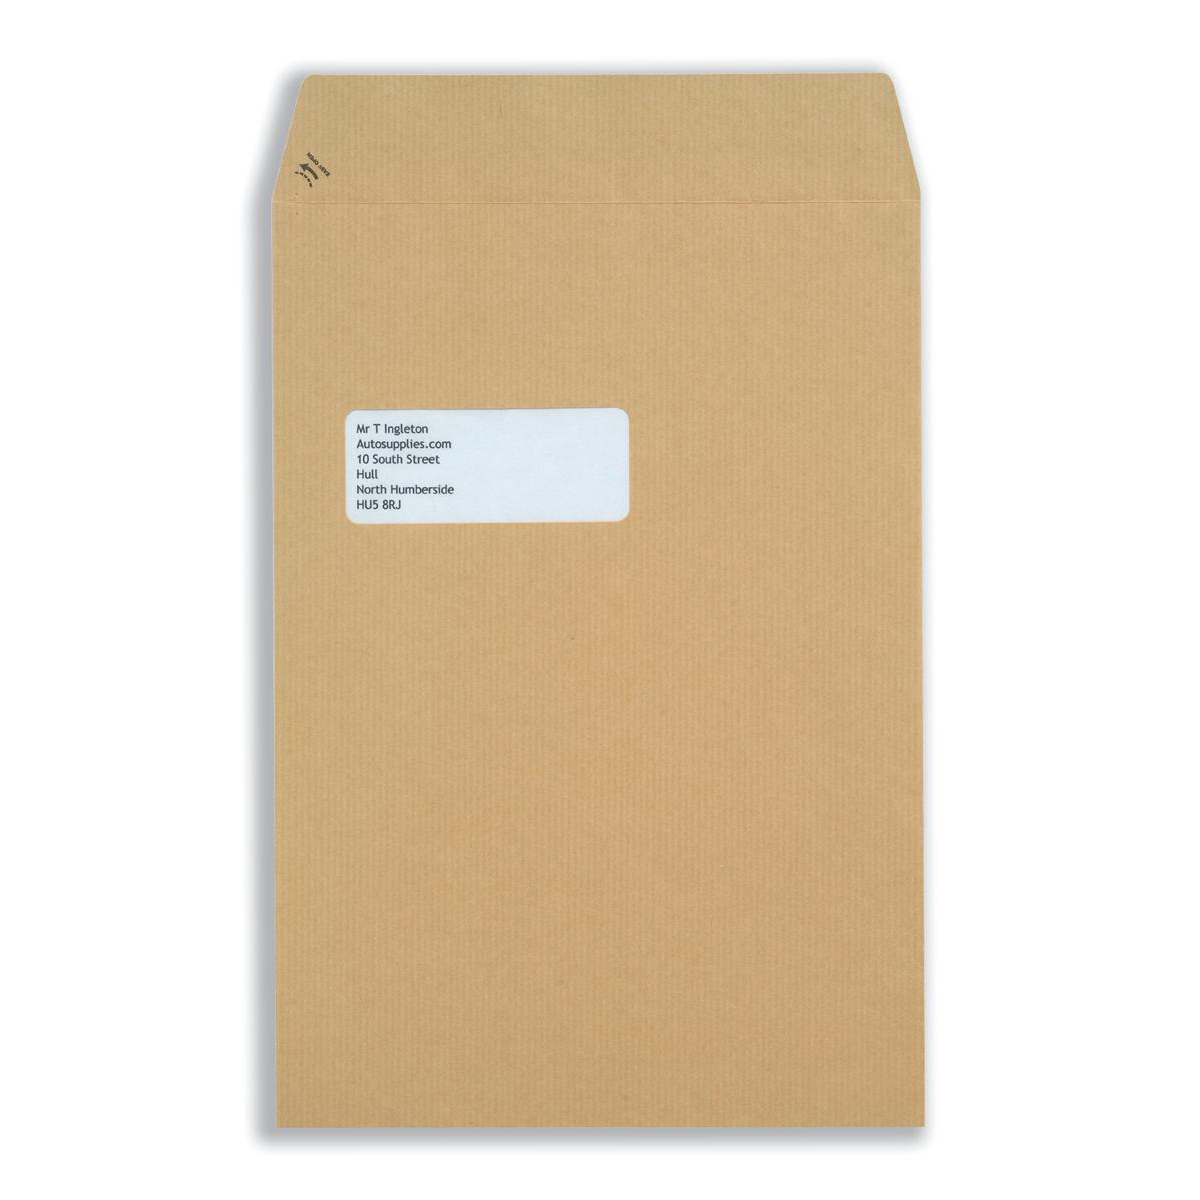 New Guardian Envelopes Pocket Self Seal Window 130gsm C4 324x229mm Manilla Ref M27503 Pack 250